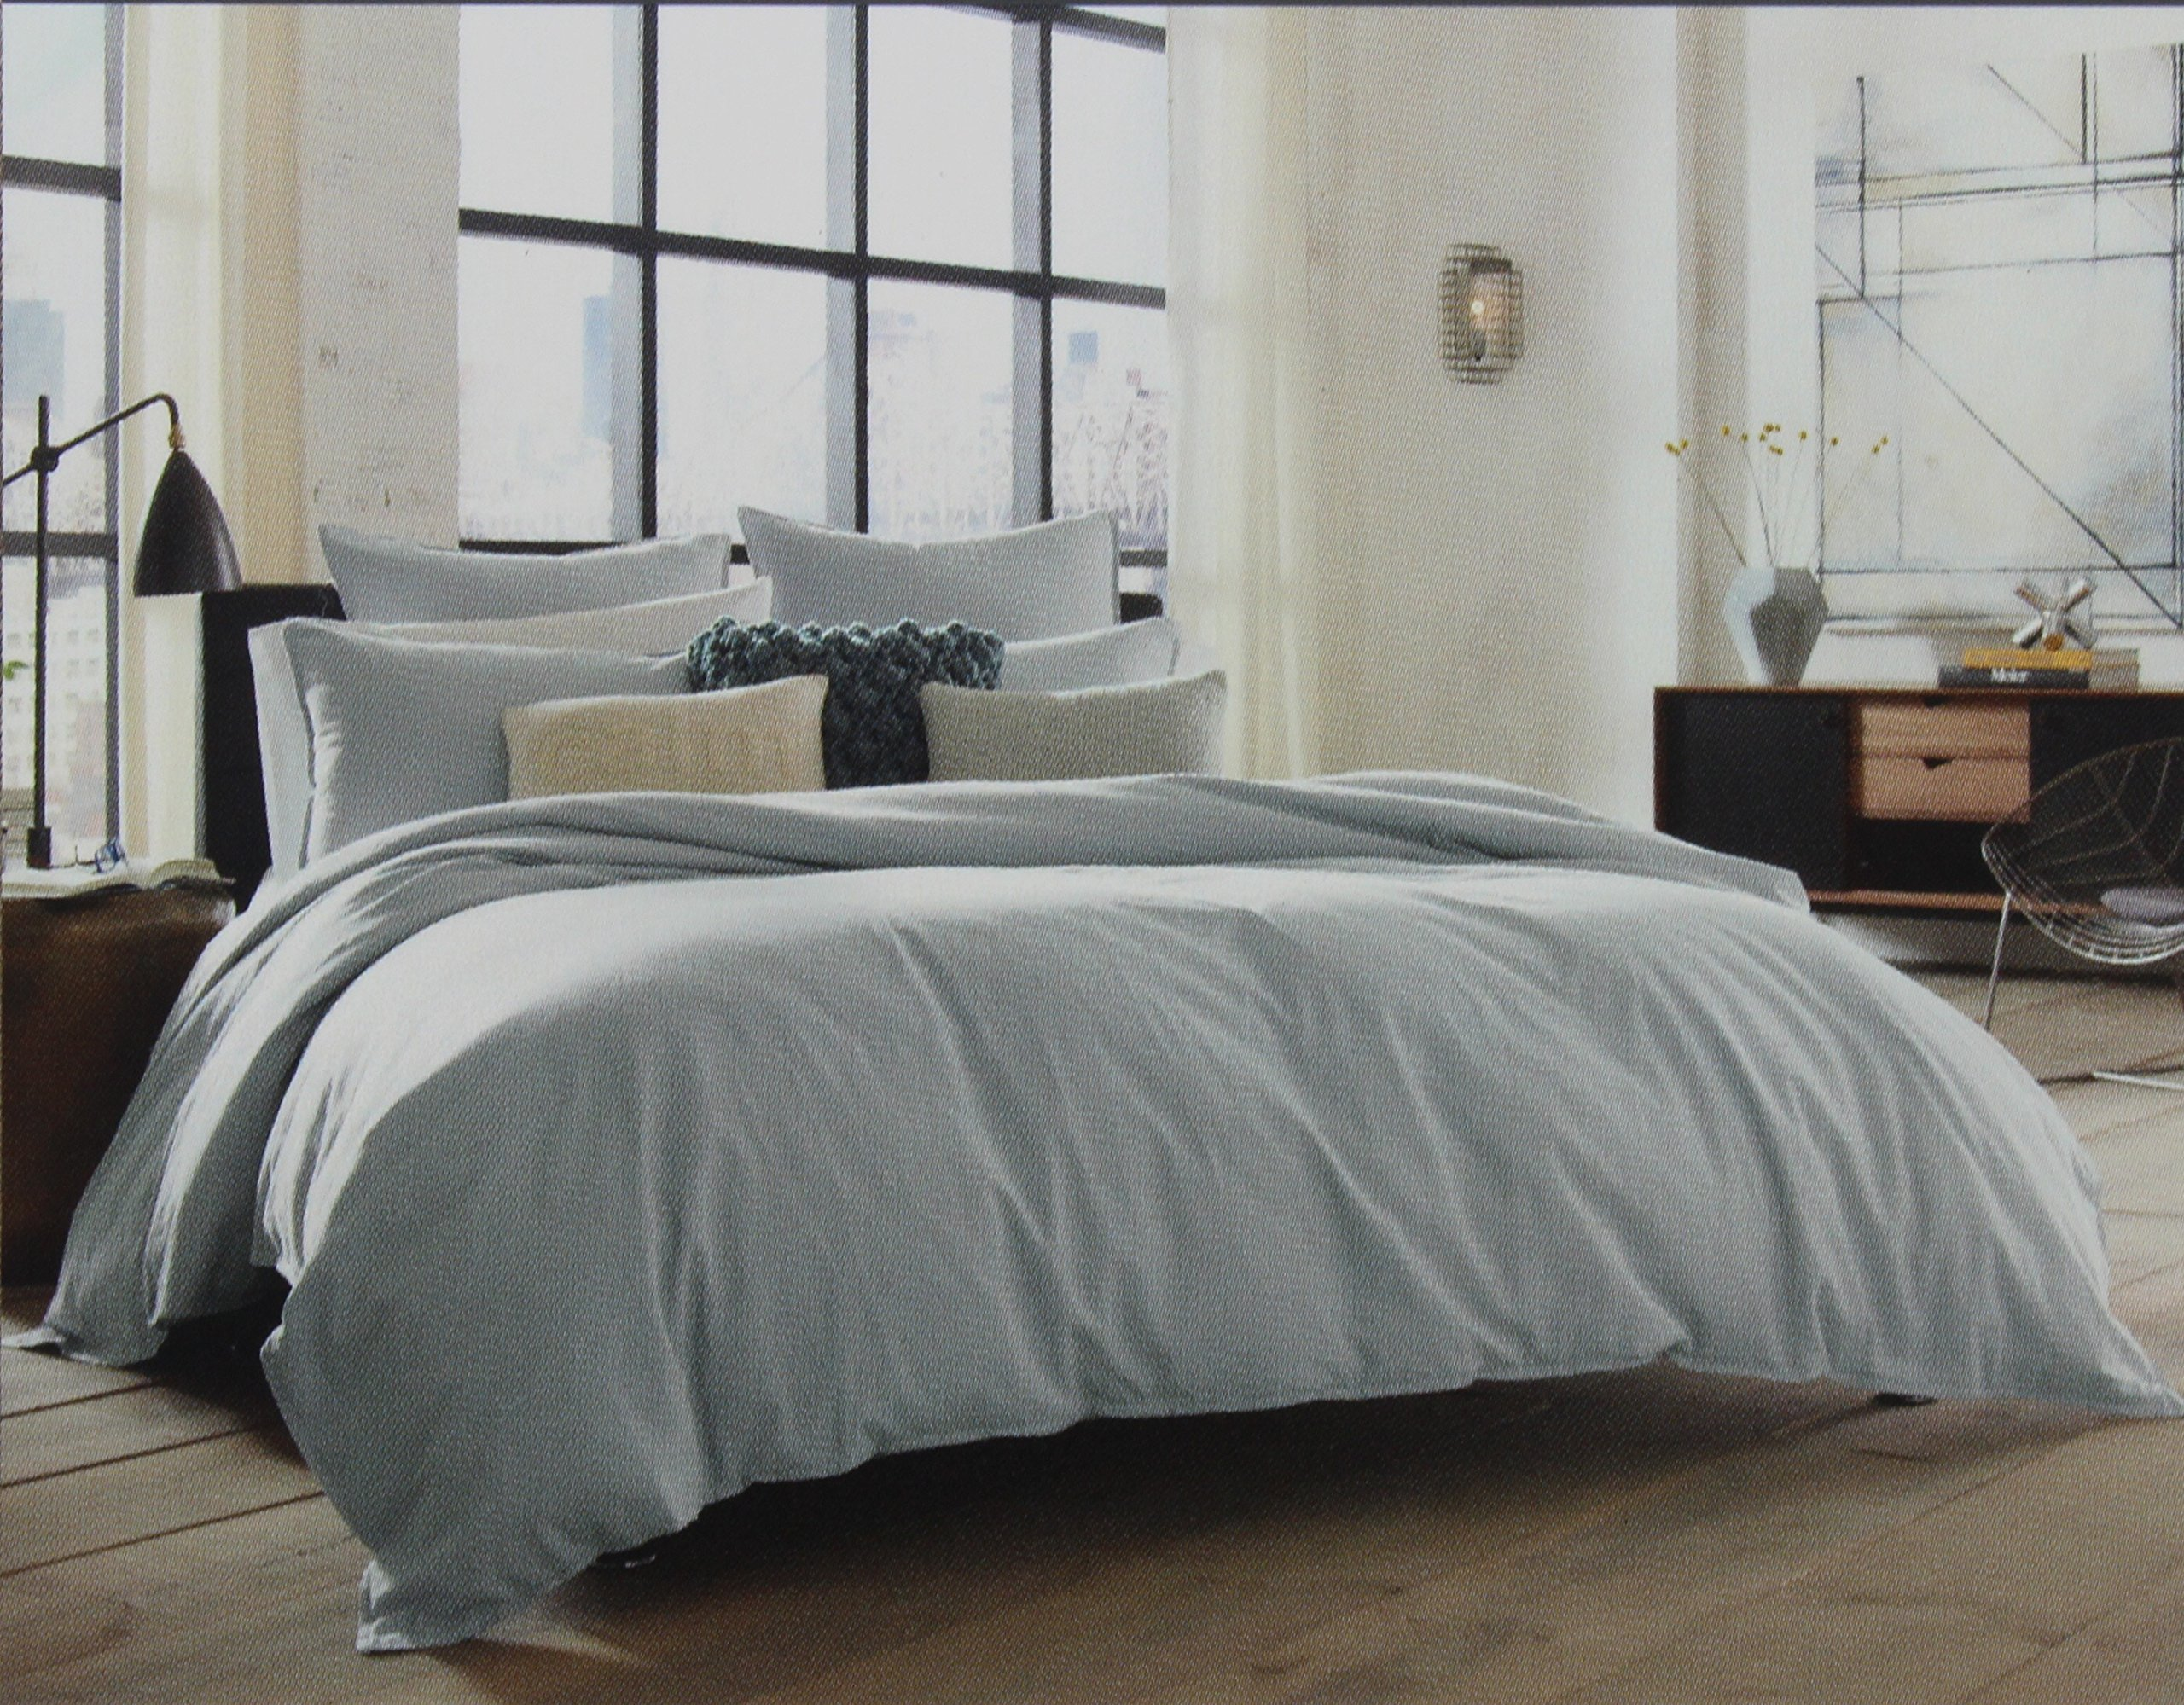 Kenneth Cole Reaction Home King Size Duvet Cover from the Mineral Bedding Collection in a Stoney Blue Color